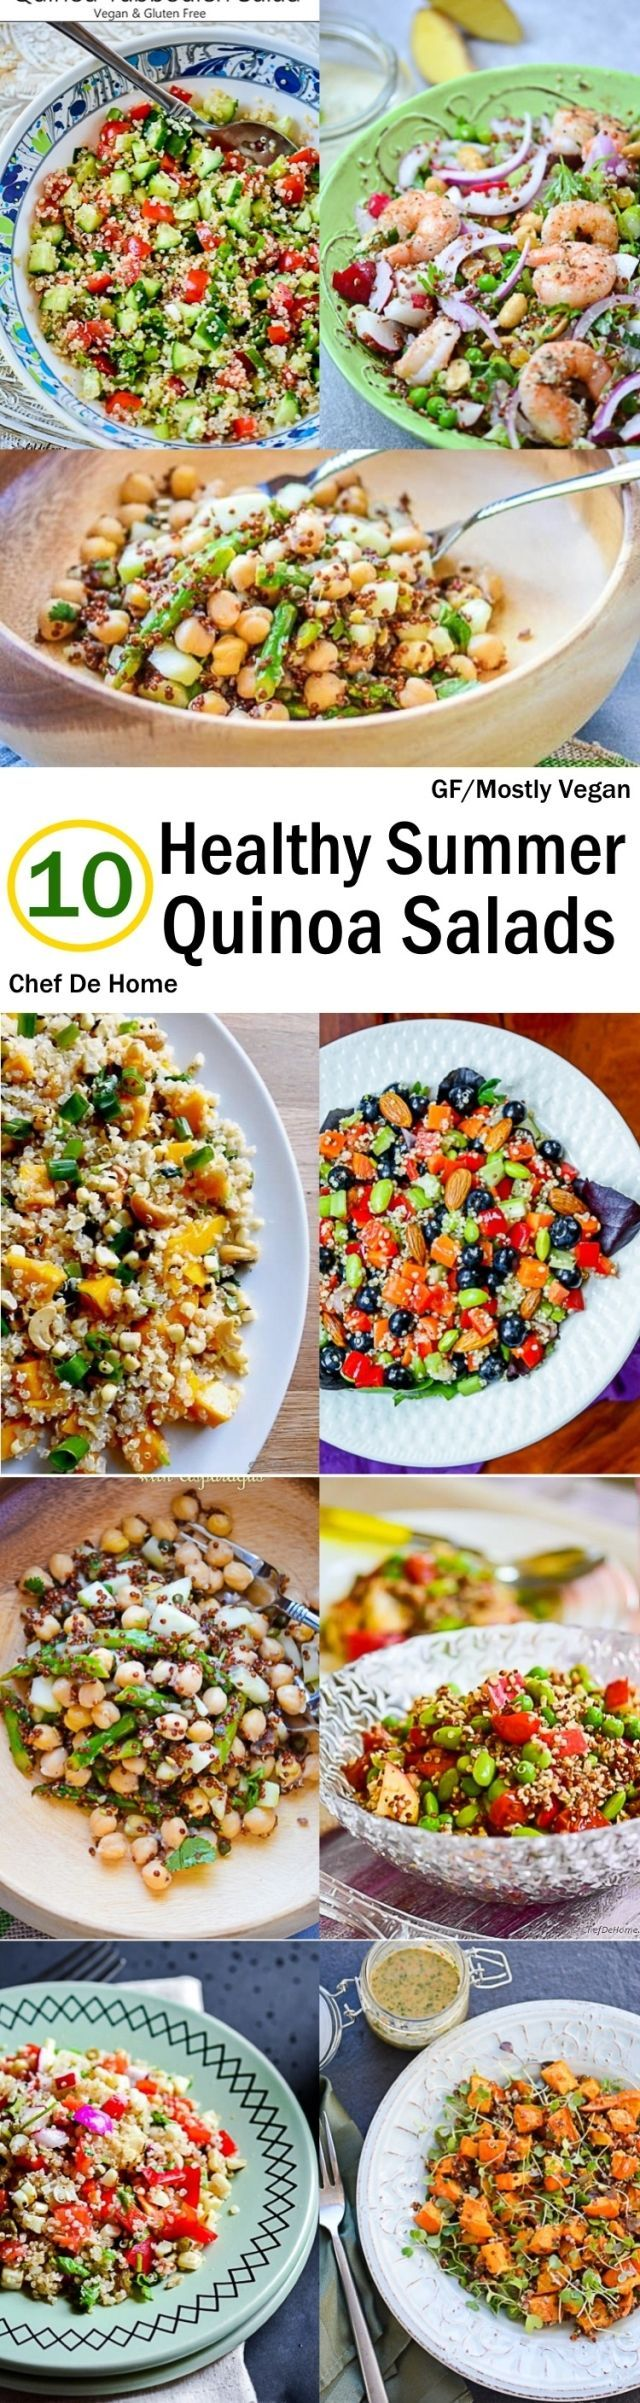 Sharing today, few of my favorite healthy quinoa salad recipes which are often on my weekday lunch menu. I love a bowl of salad for lunch in summers and frankly, any season of the year. And quinoa...